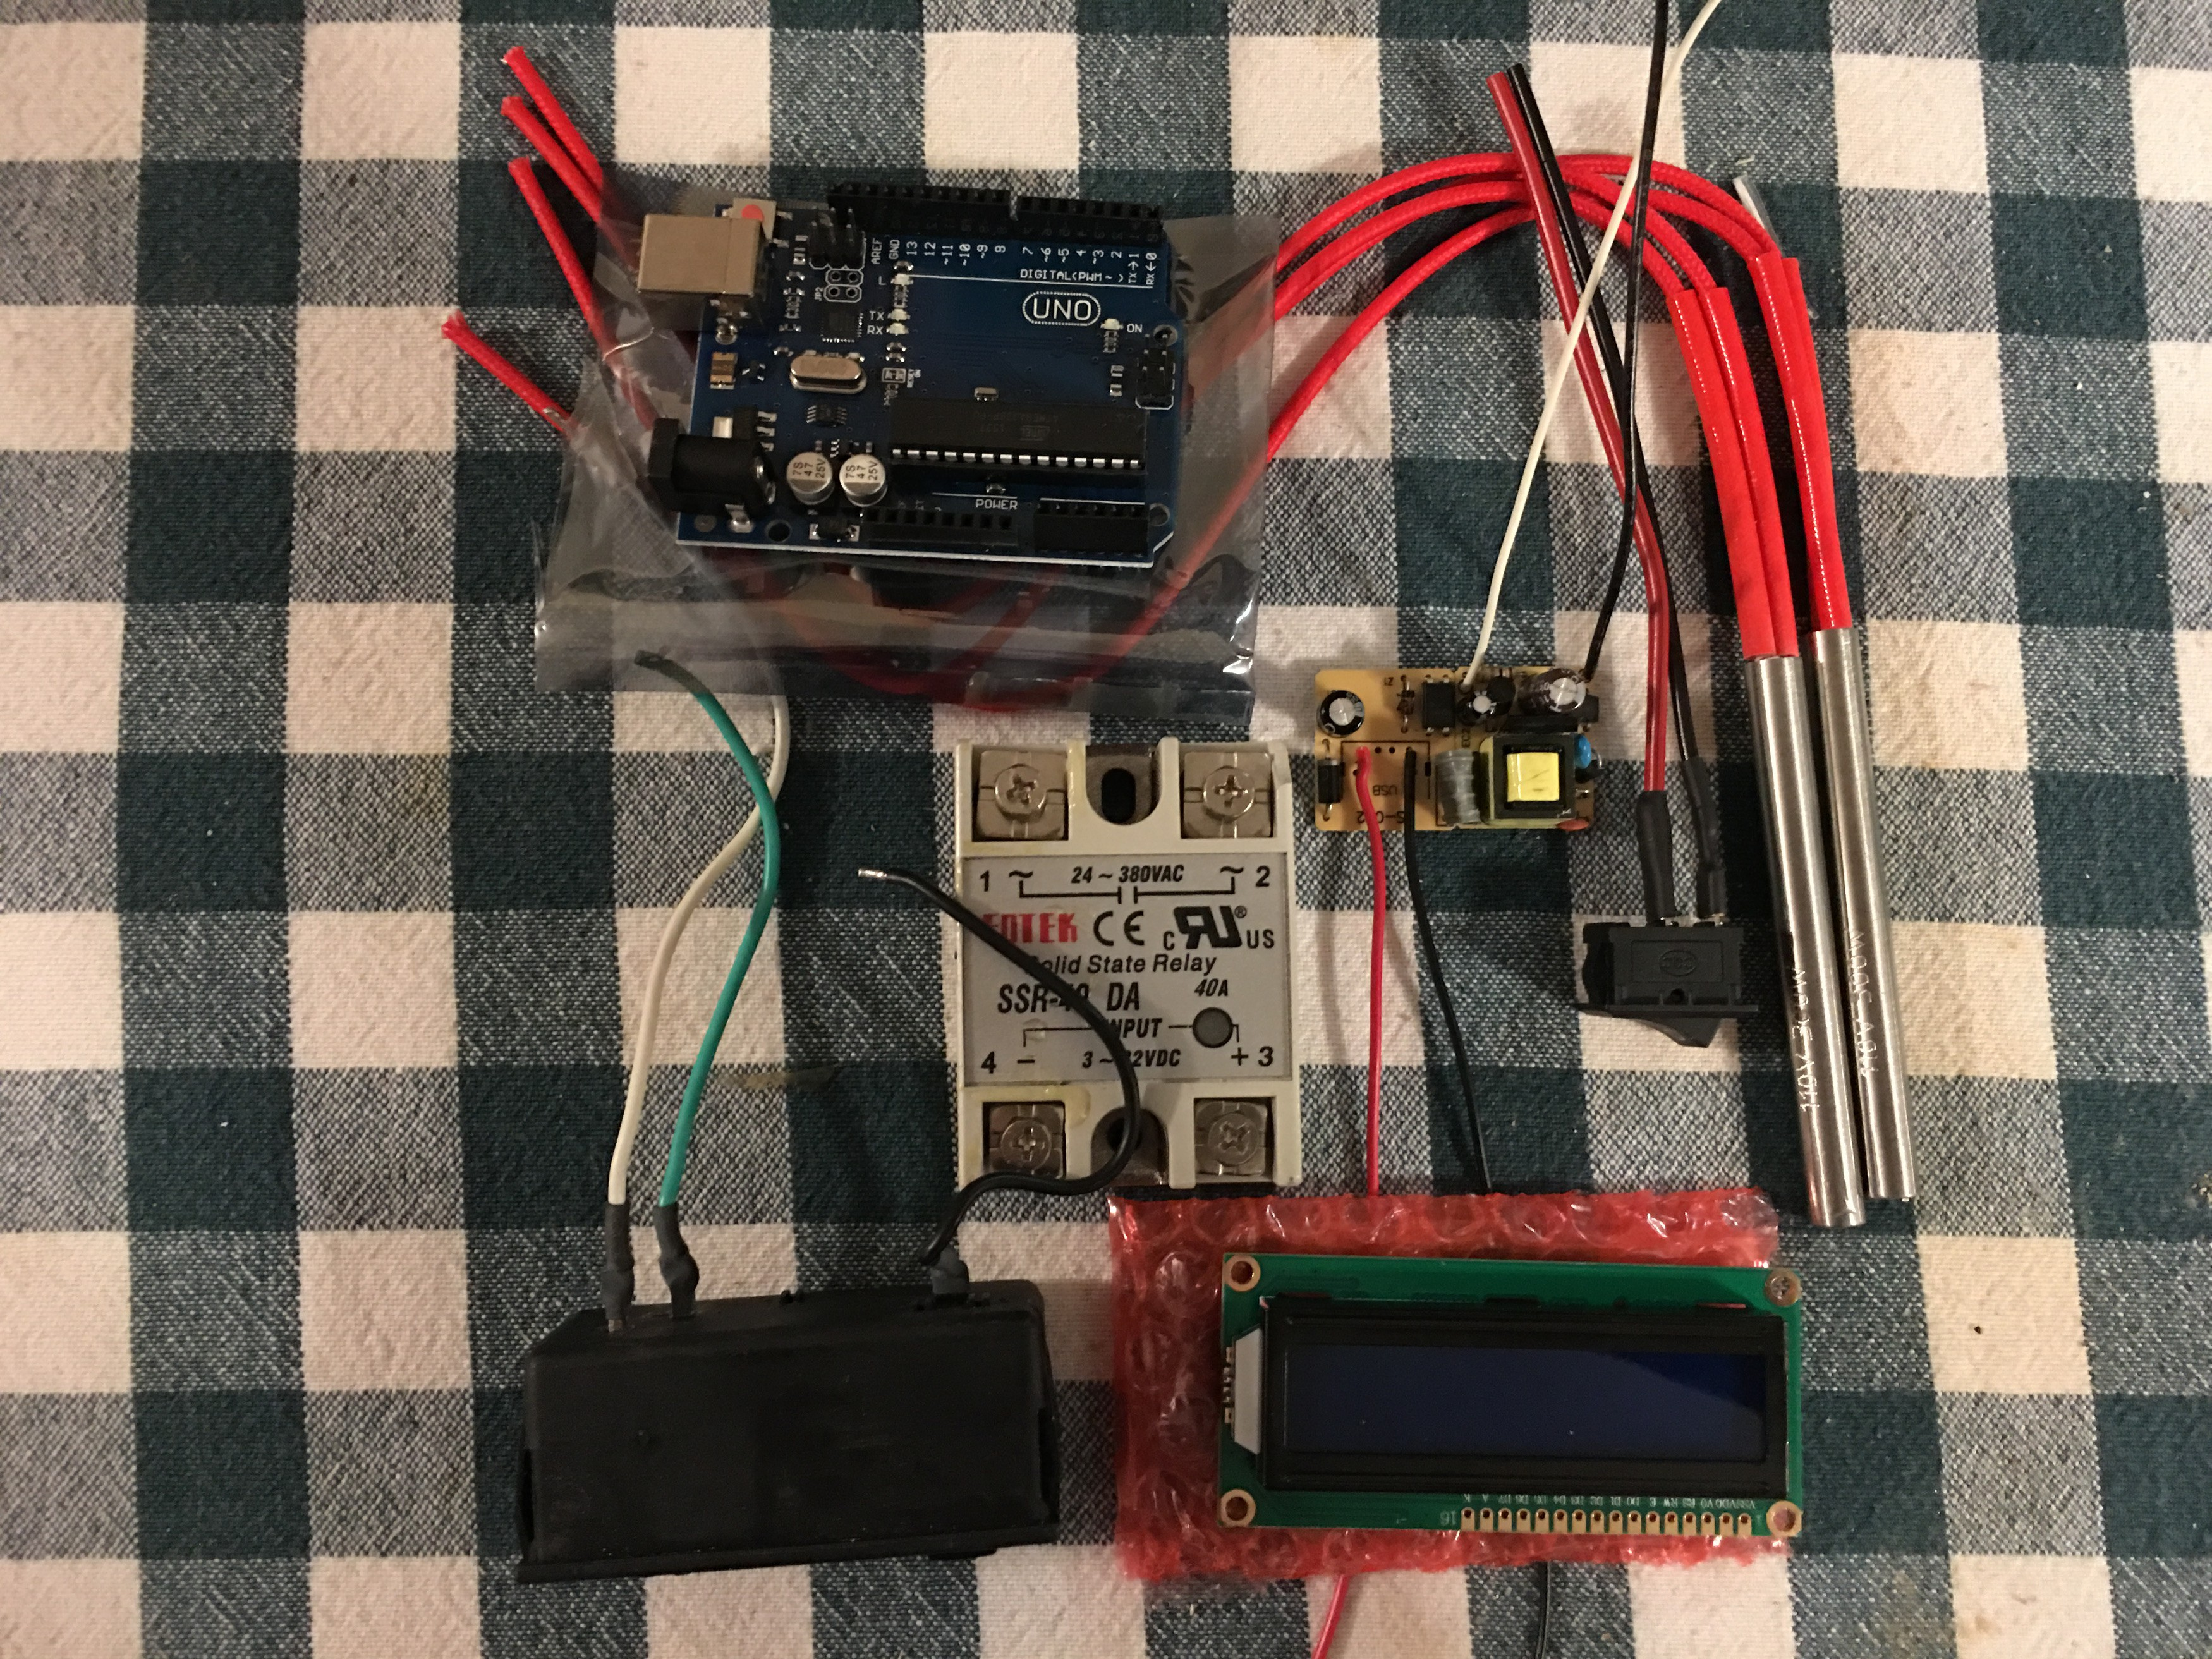 Diy Hotplate Make Your Own Temperature Controller With An Arduino Since I Plan On Building 3 Hotplates Have Kits Some Of The Parts Are Currently Being Used In My Pid Control Box And Will Pull Those Out After